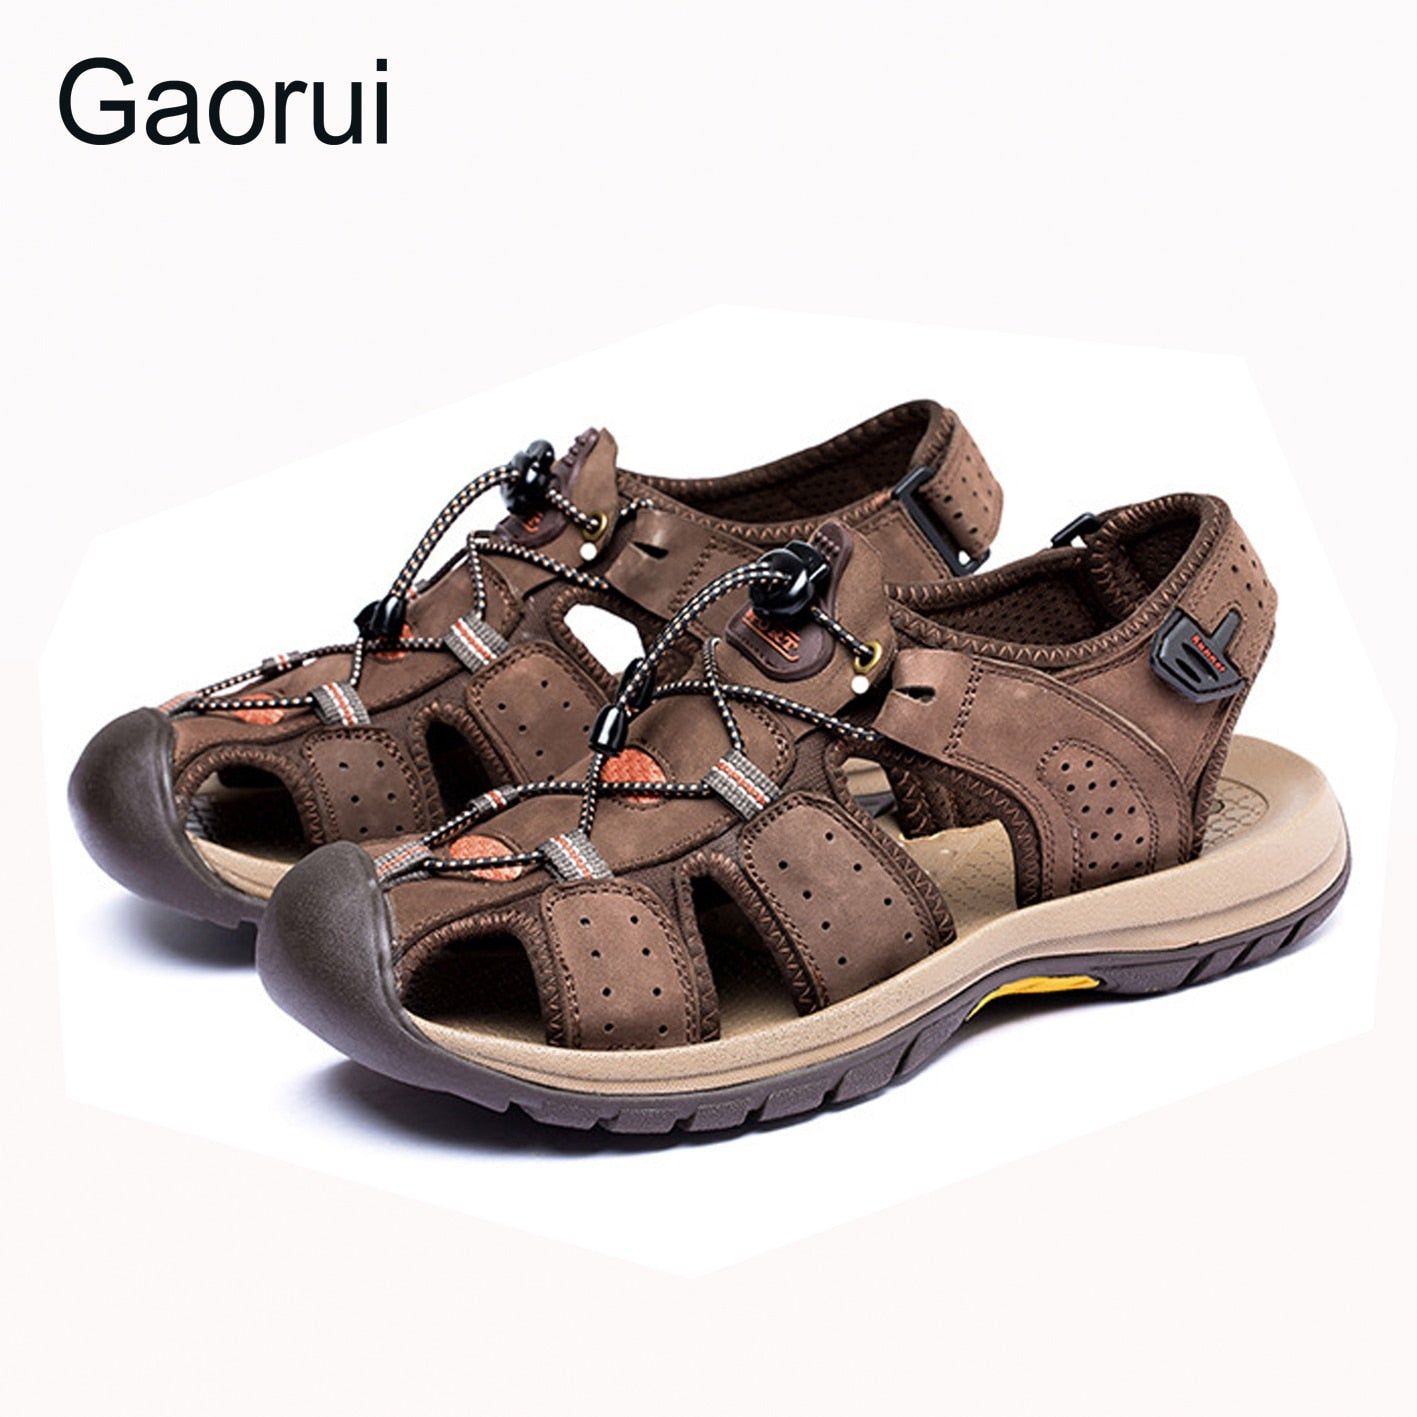 GAORUI New Men Sandals Genuine Leather Fashion Summer Shoes Men Slippers Breathable Male Causal Sandals Shoes Leather Plus Size